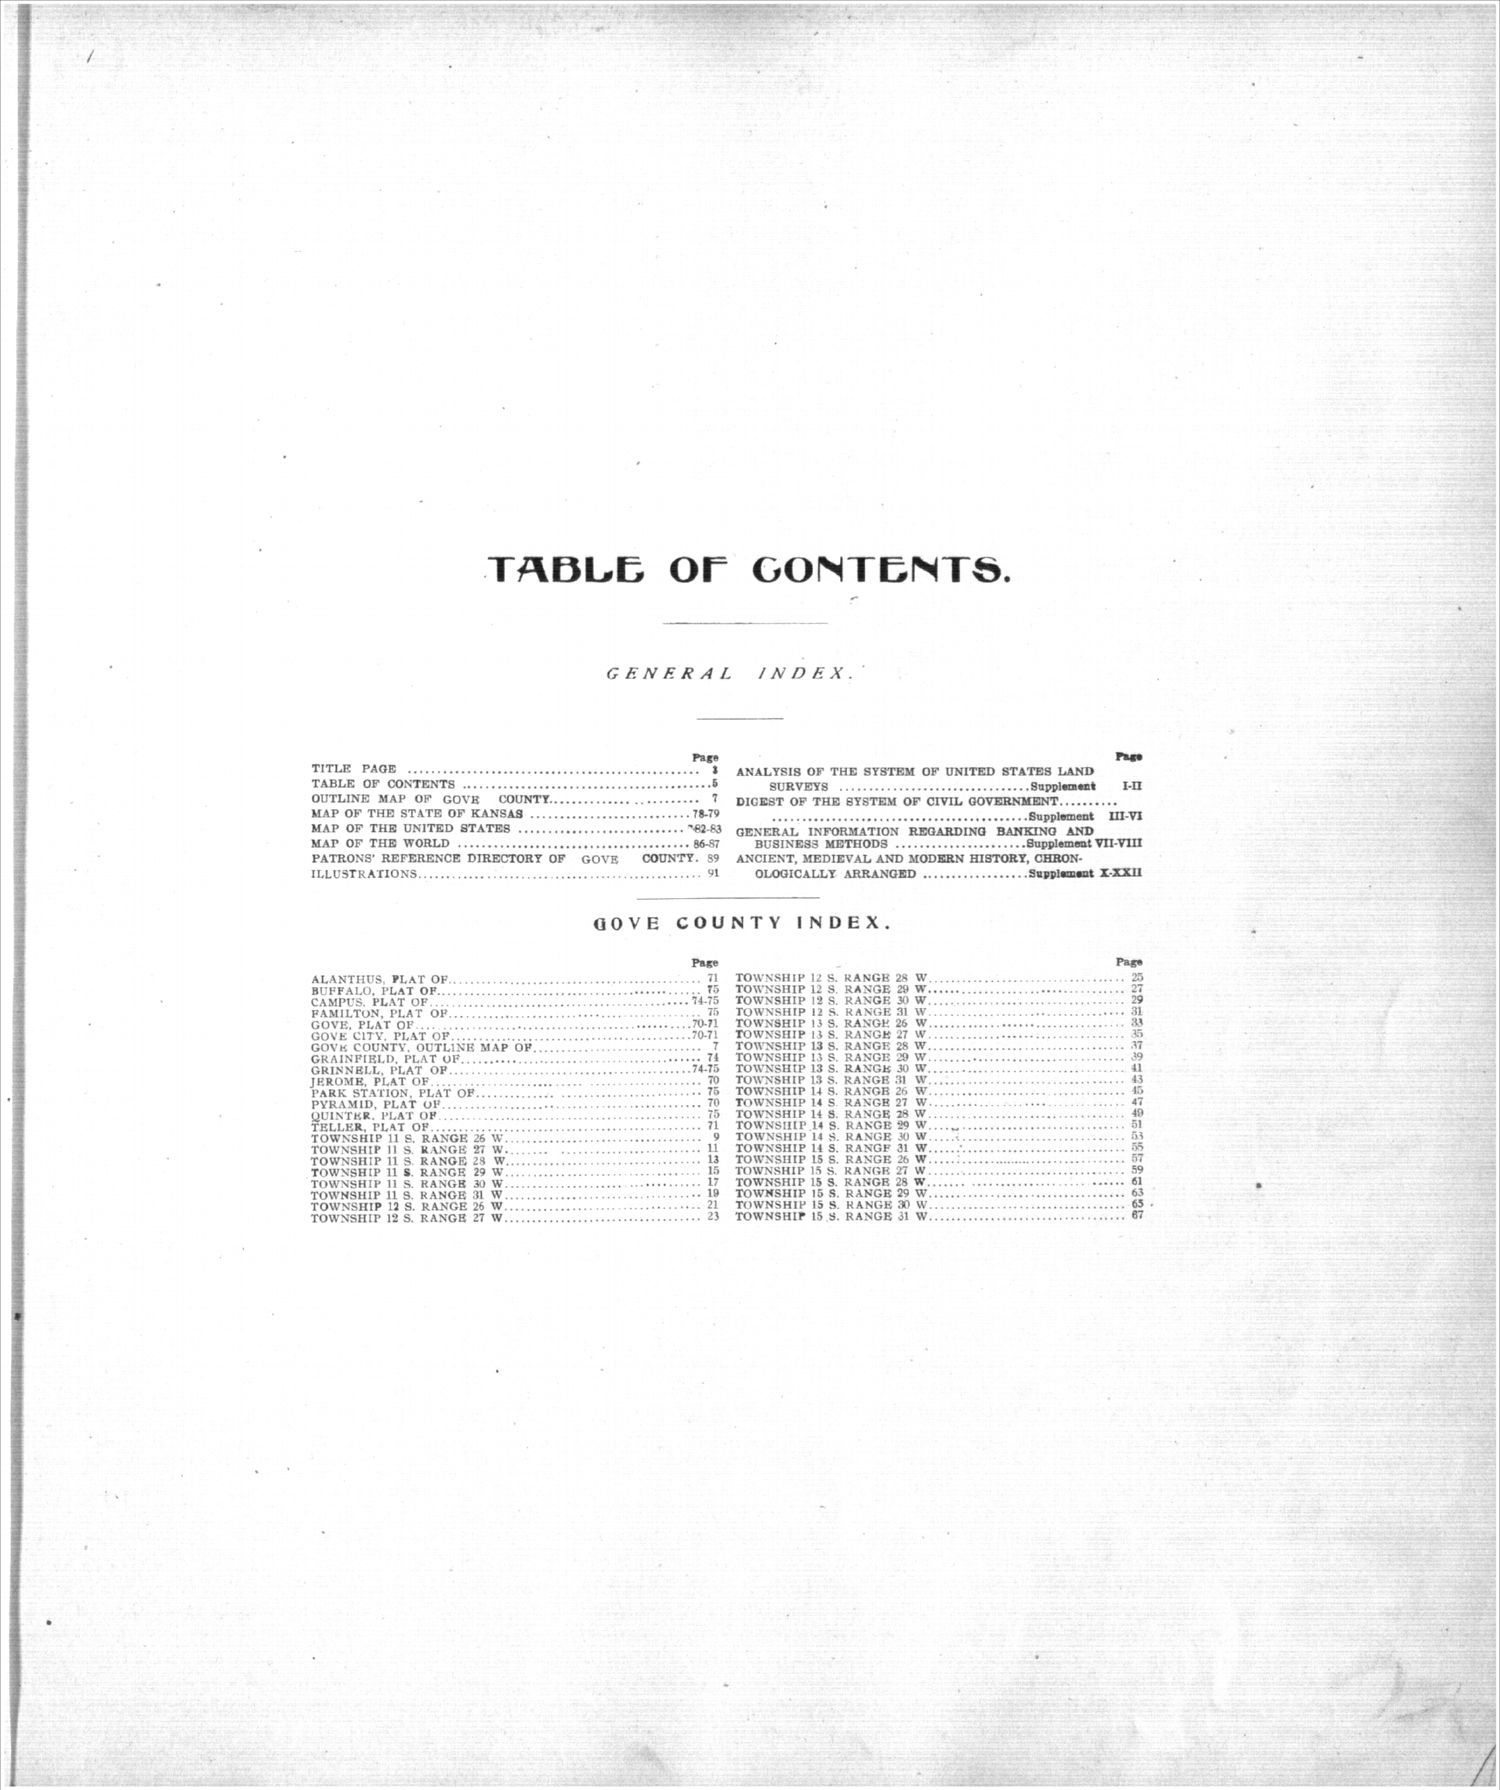 Standard atlas of Gove County, Kansas - Table of Contents